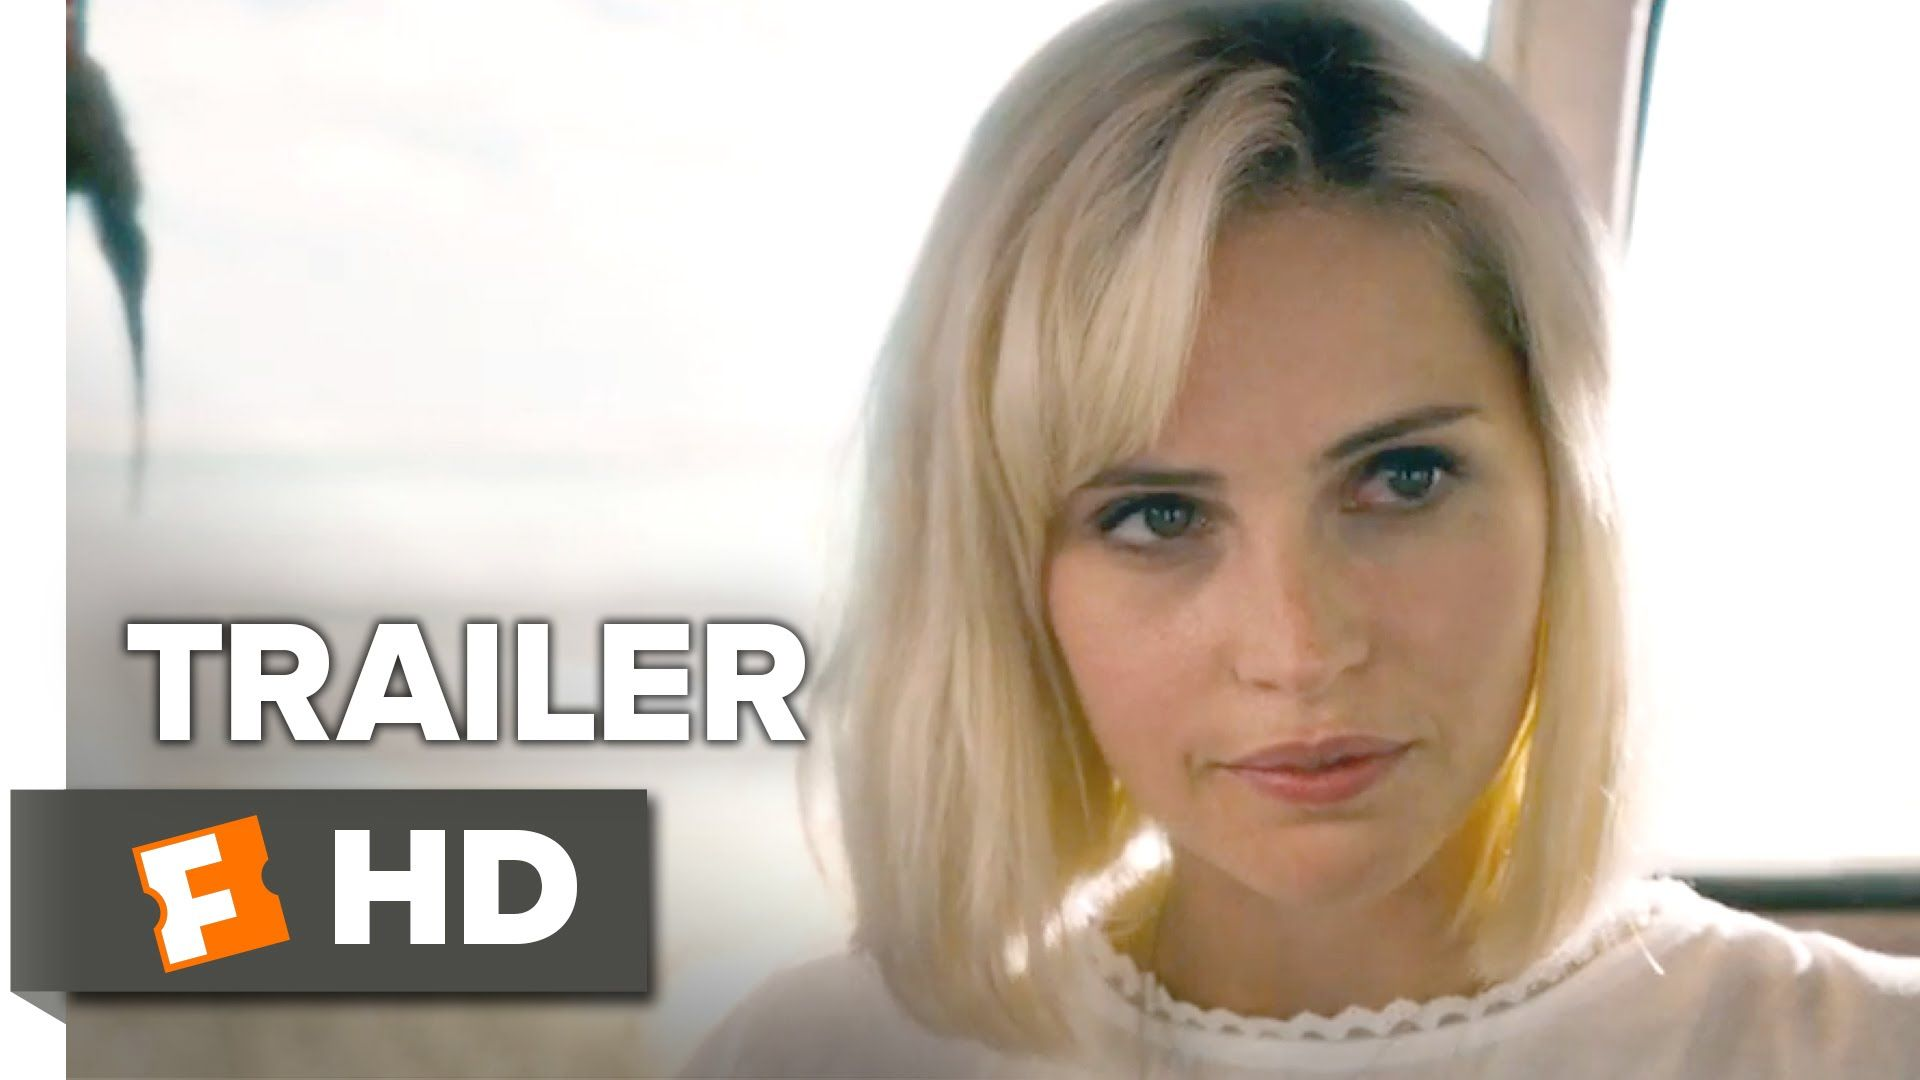 ■ Collide ■ An American backpacker gets involved with a ring of drug smugglers as their driver, though he winds up on the run from his employers across Cologne high-speed Autobahn. Director: Eran Creevy Stars: Nicholas Hoult, Felicity Jones, Anthony Hopkins, Ben Kingsley